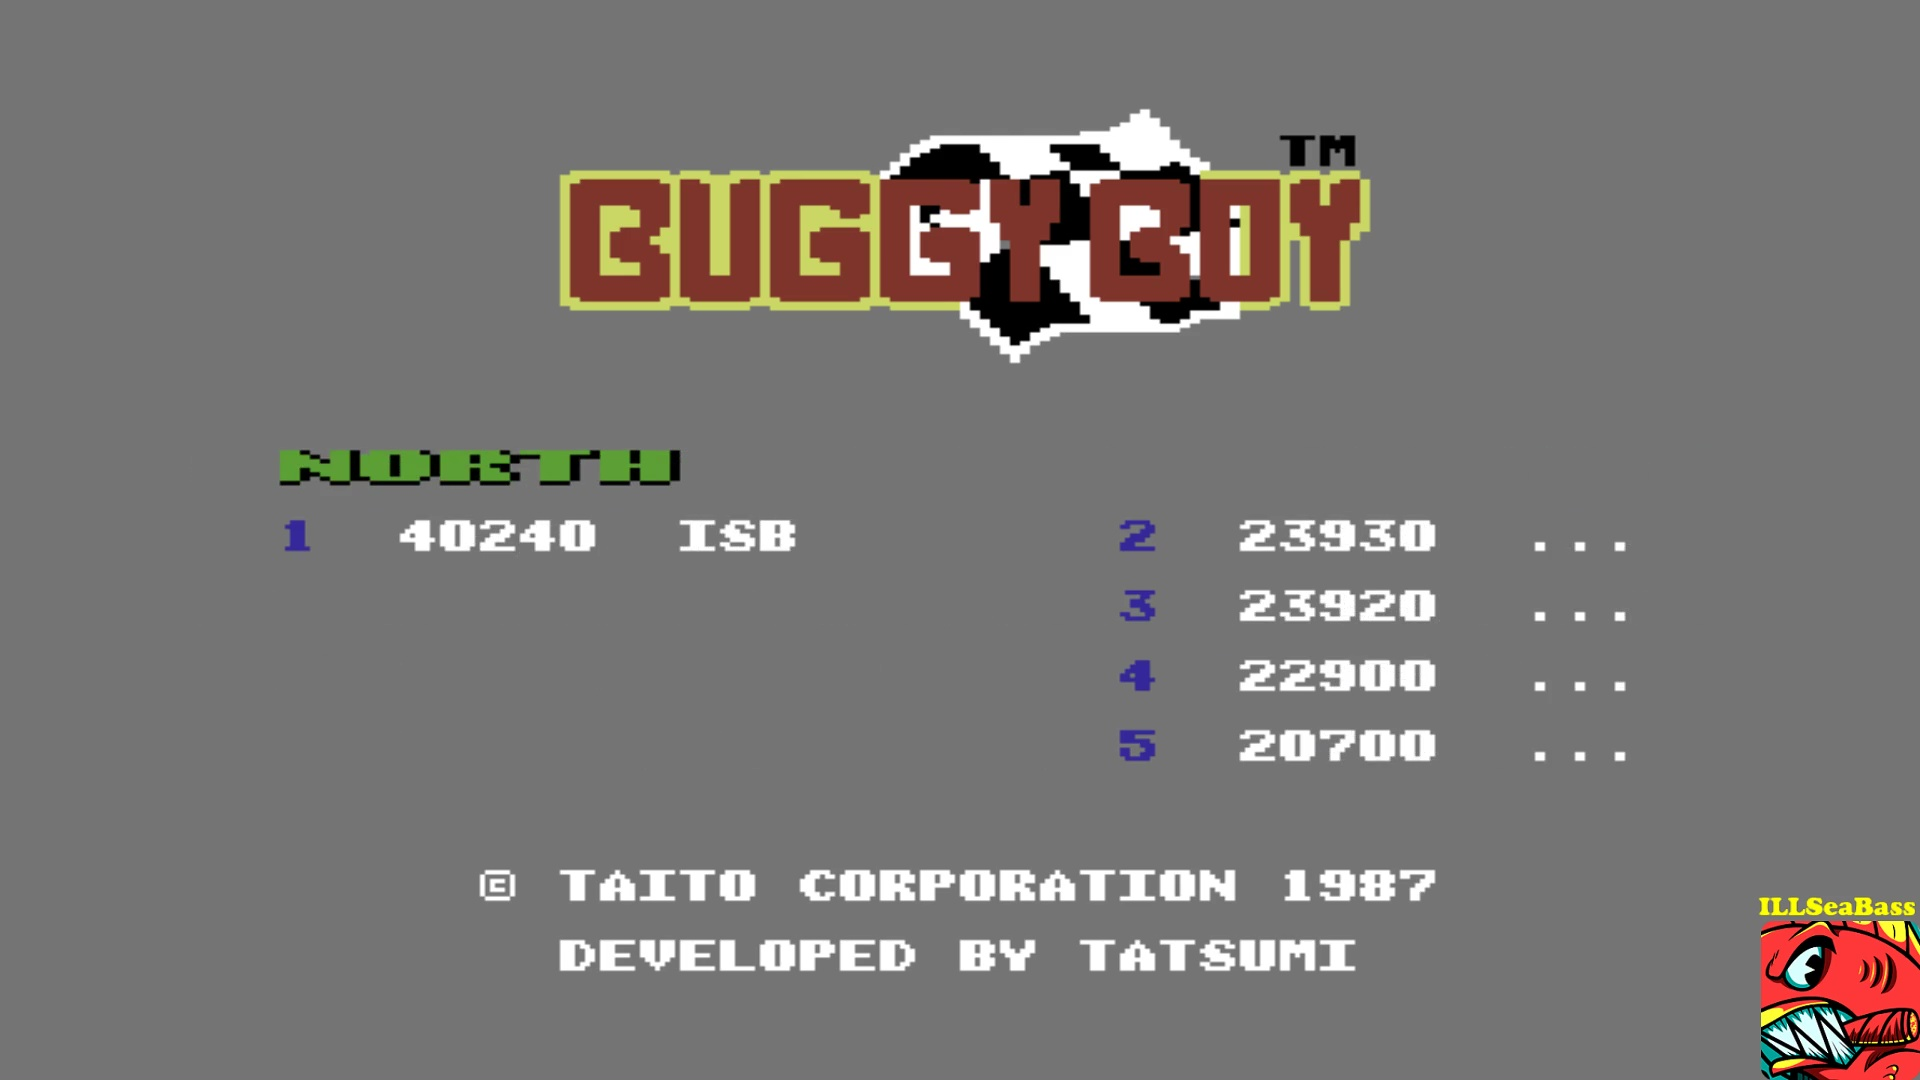 ILLSeaBass: Buggy Boy: North (Commodore 64 Emulated) 40,240 points on 2017-10-21 12:13:30